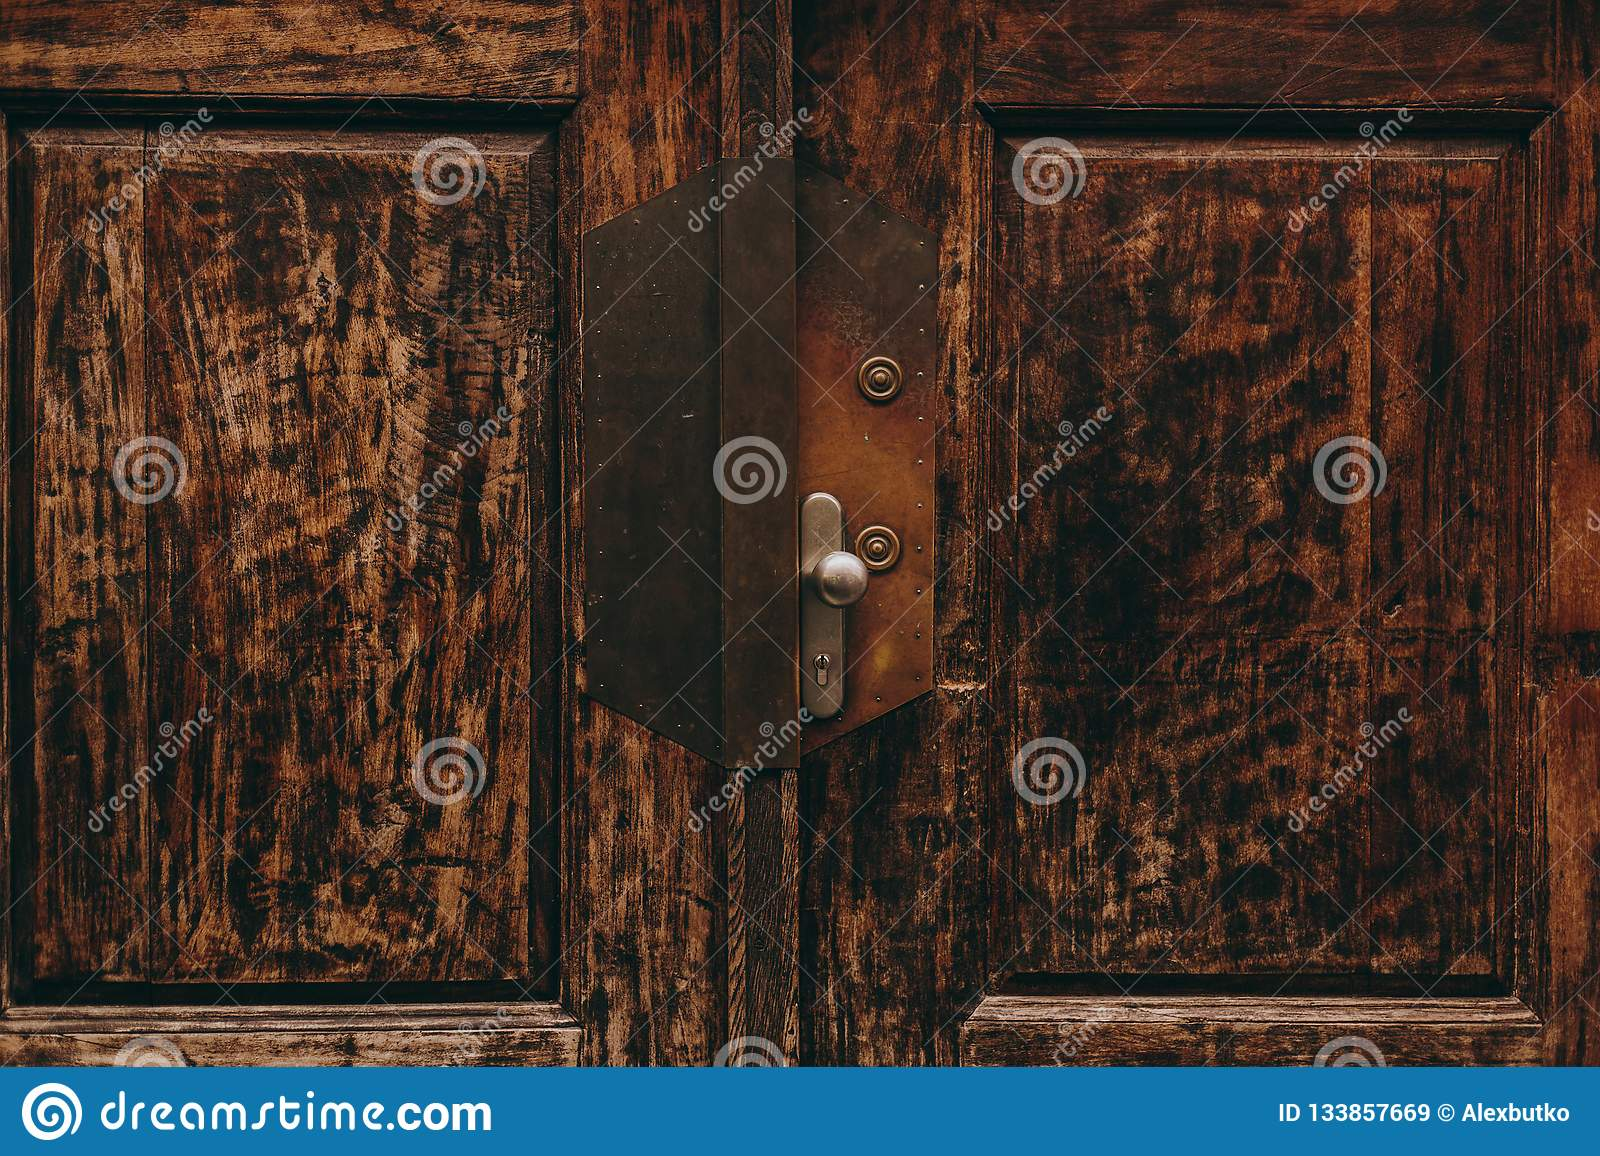 Beautiful antique wooden doors in Italy with metal handles